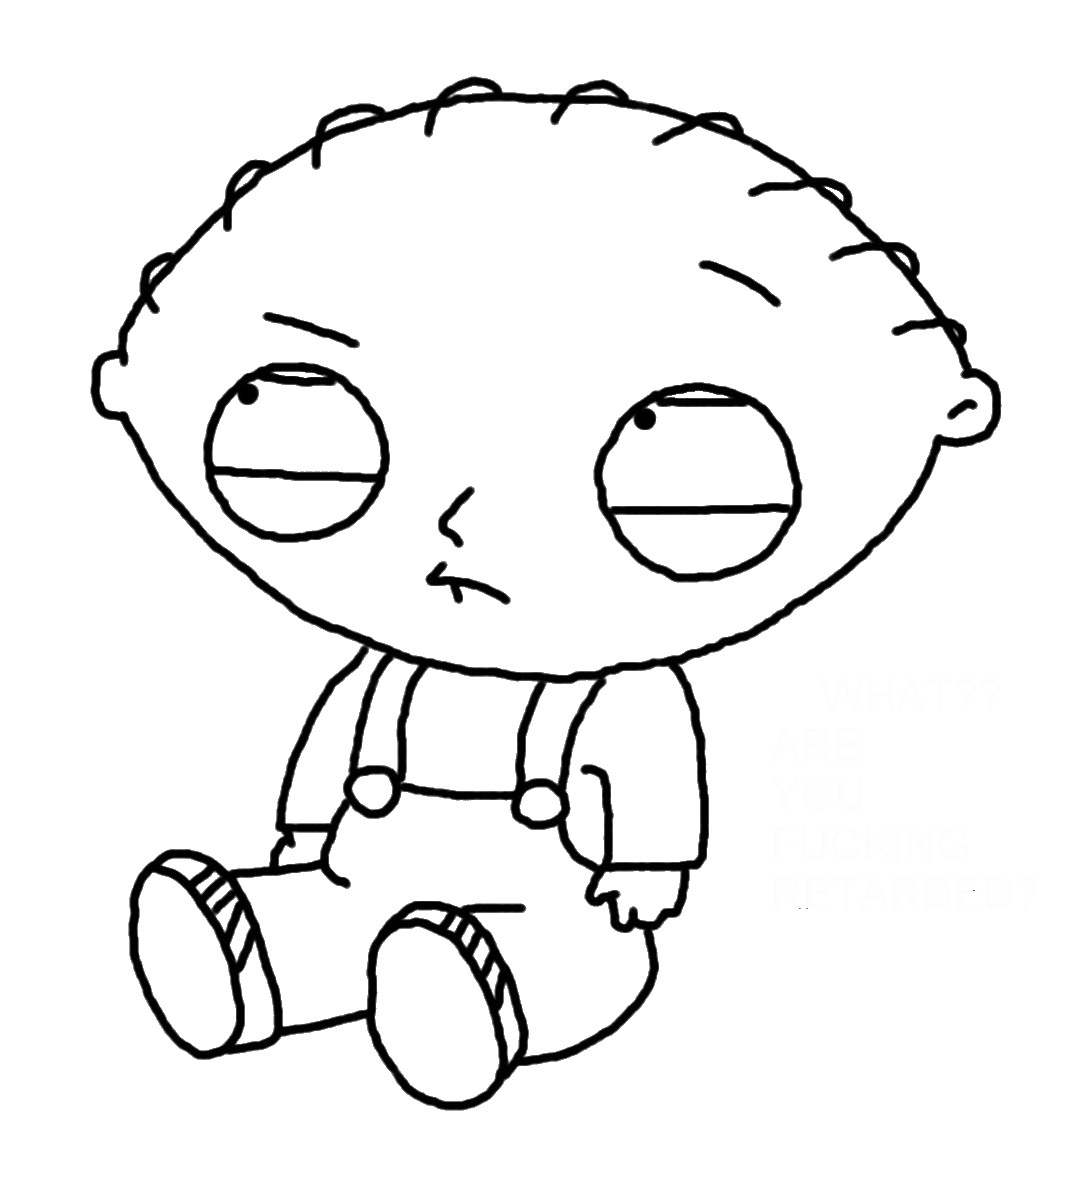 1090x1200 Coloring Pages Engaging Stewie Coloring Pages Griffin Family Guy